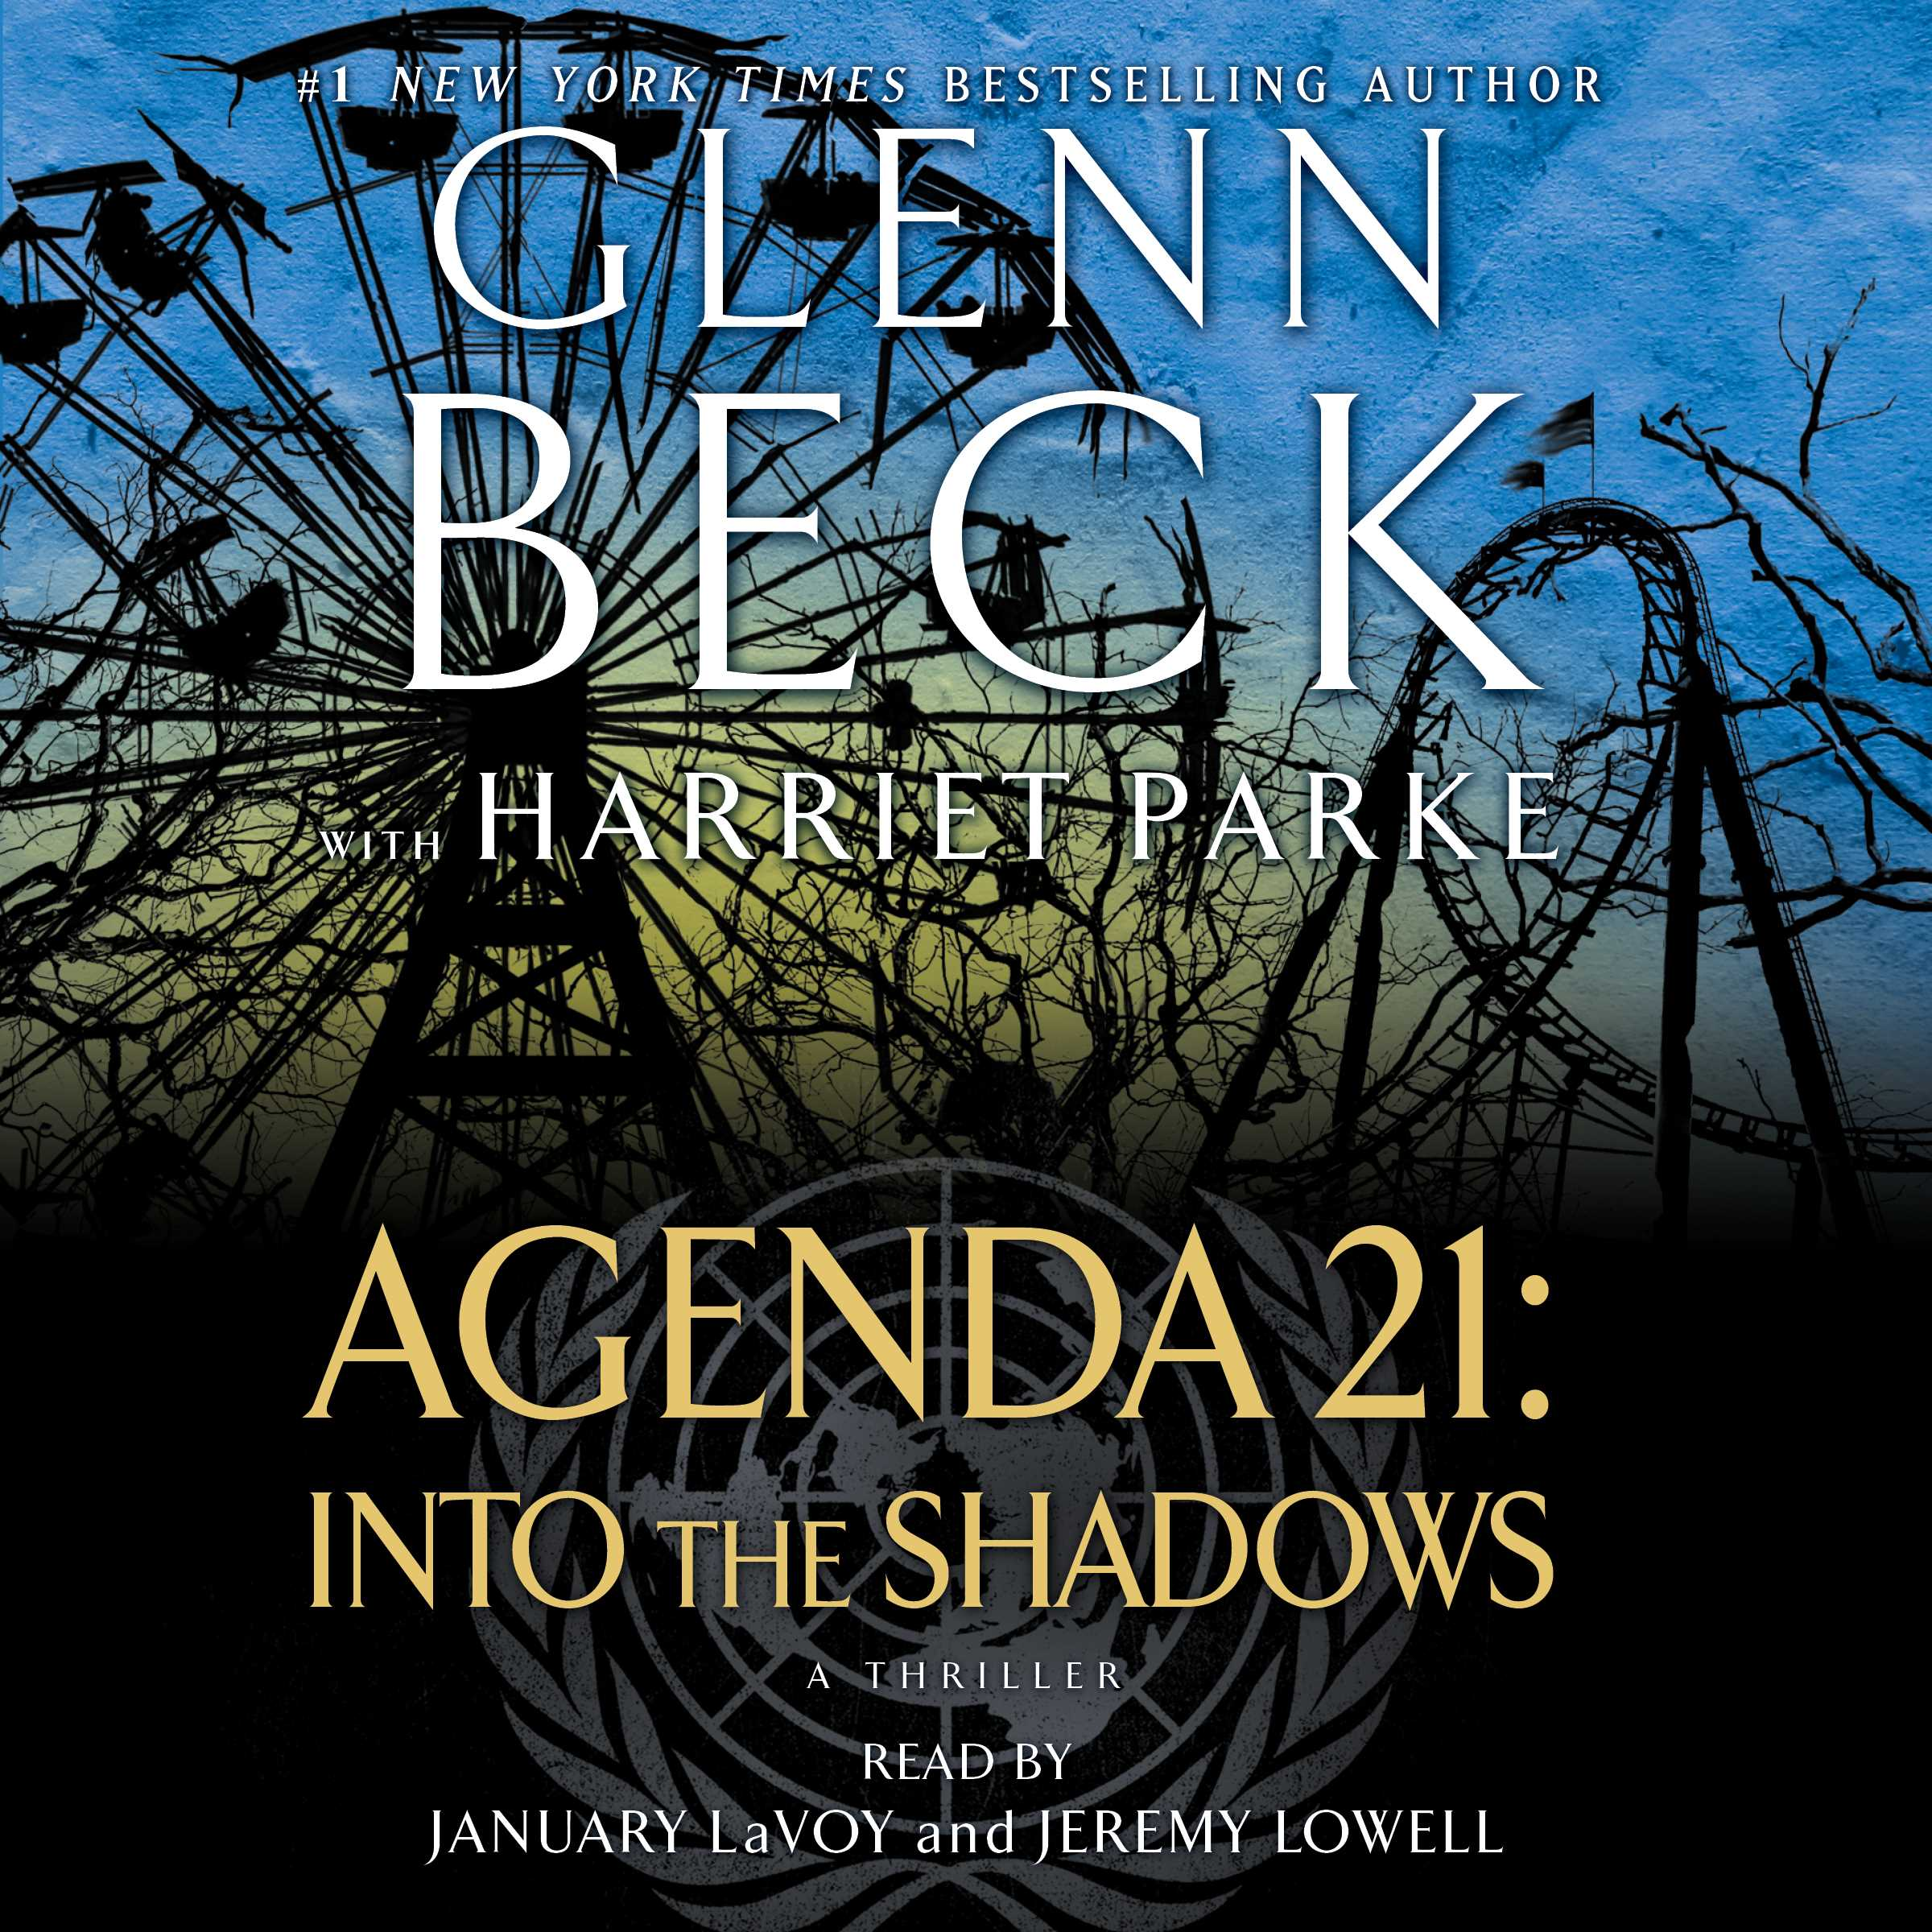 Agenda-21-into-the-shadows-9781442374270_hr